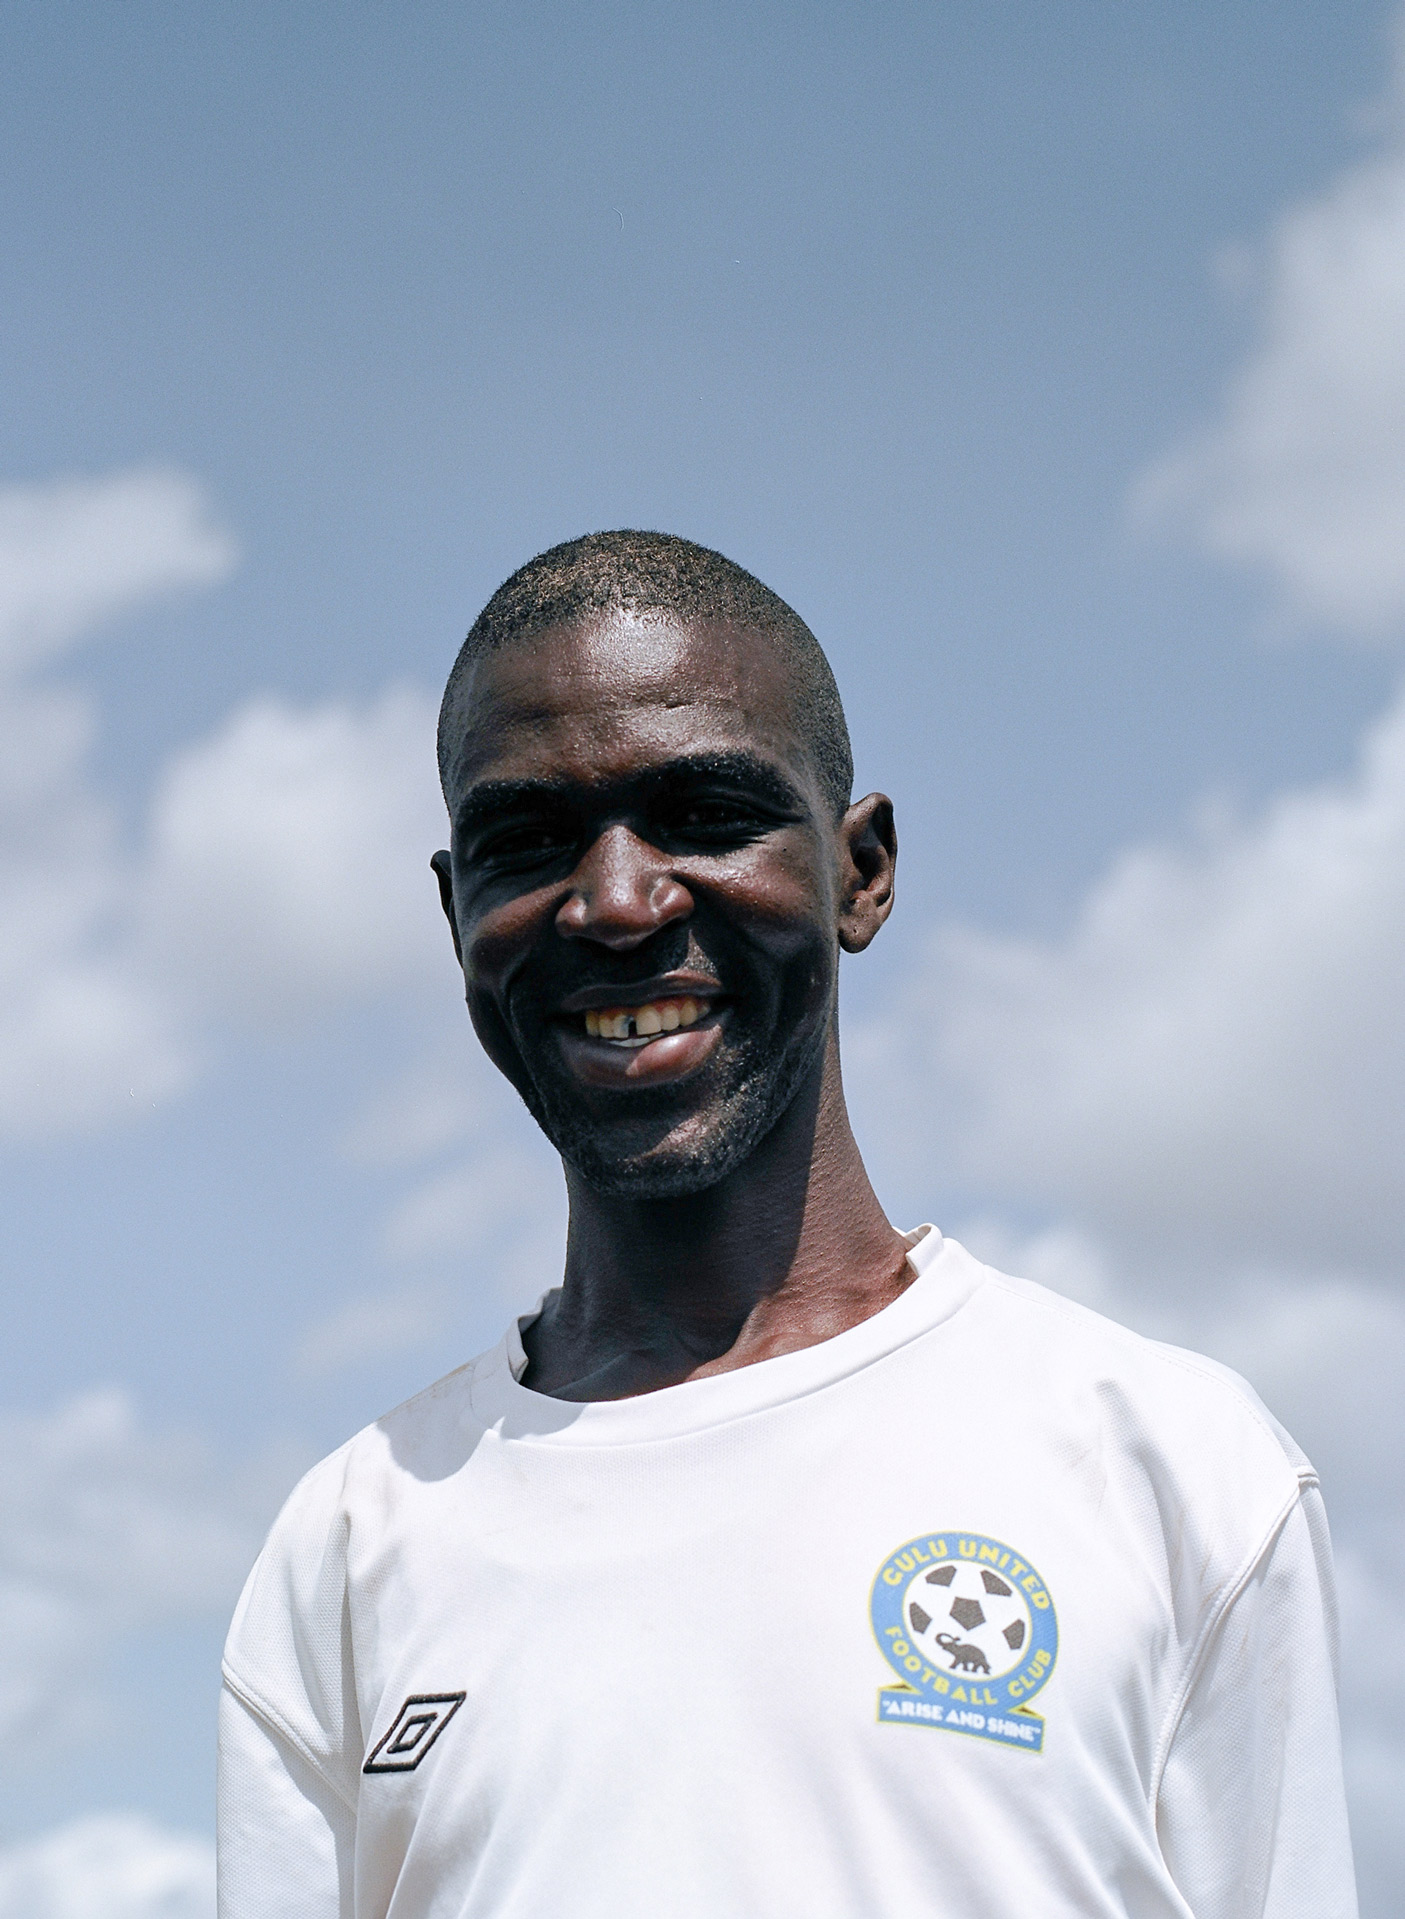 portrait of black man wearing white shirt smiling at camera with blue sky in the background by Alexi Hobbs in Uganda for Football for Good with Sportsnet